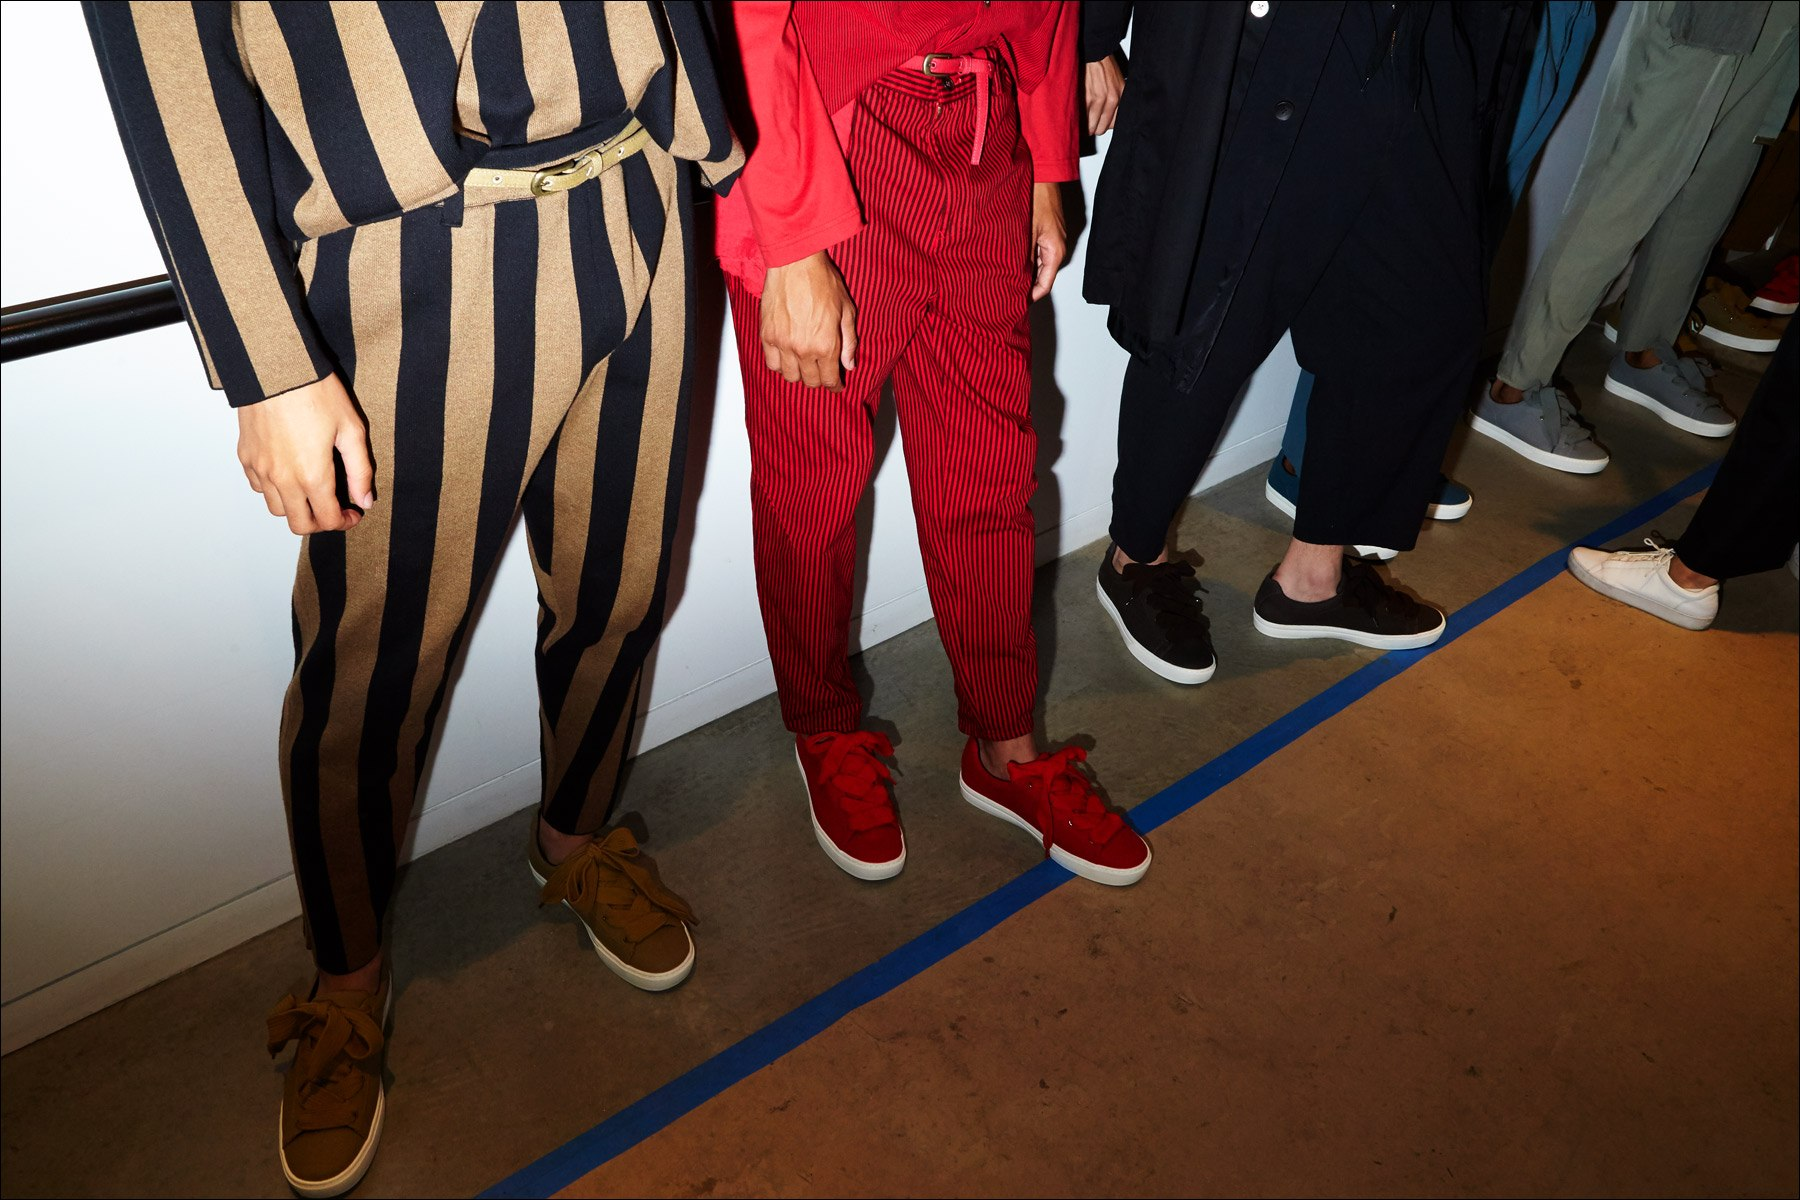 Trousers and sneakers snapped backstage at Gustav Von Ashcenbach Spring 2018 menswear show by designer Robert Geller. Photographed by Alexander Thompson for Ponyboy magazine NY.